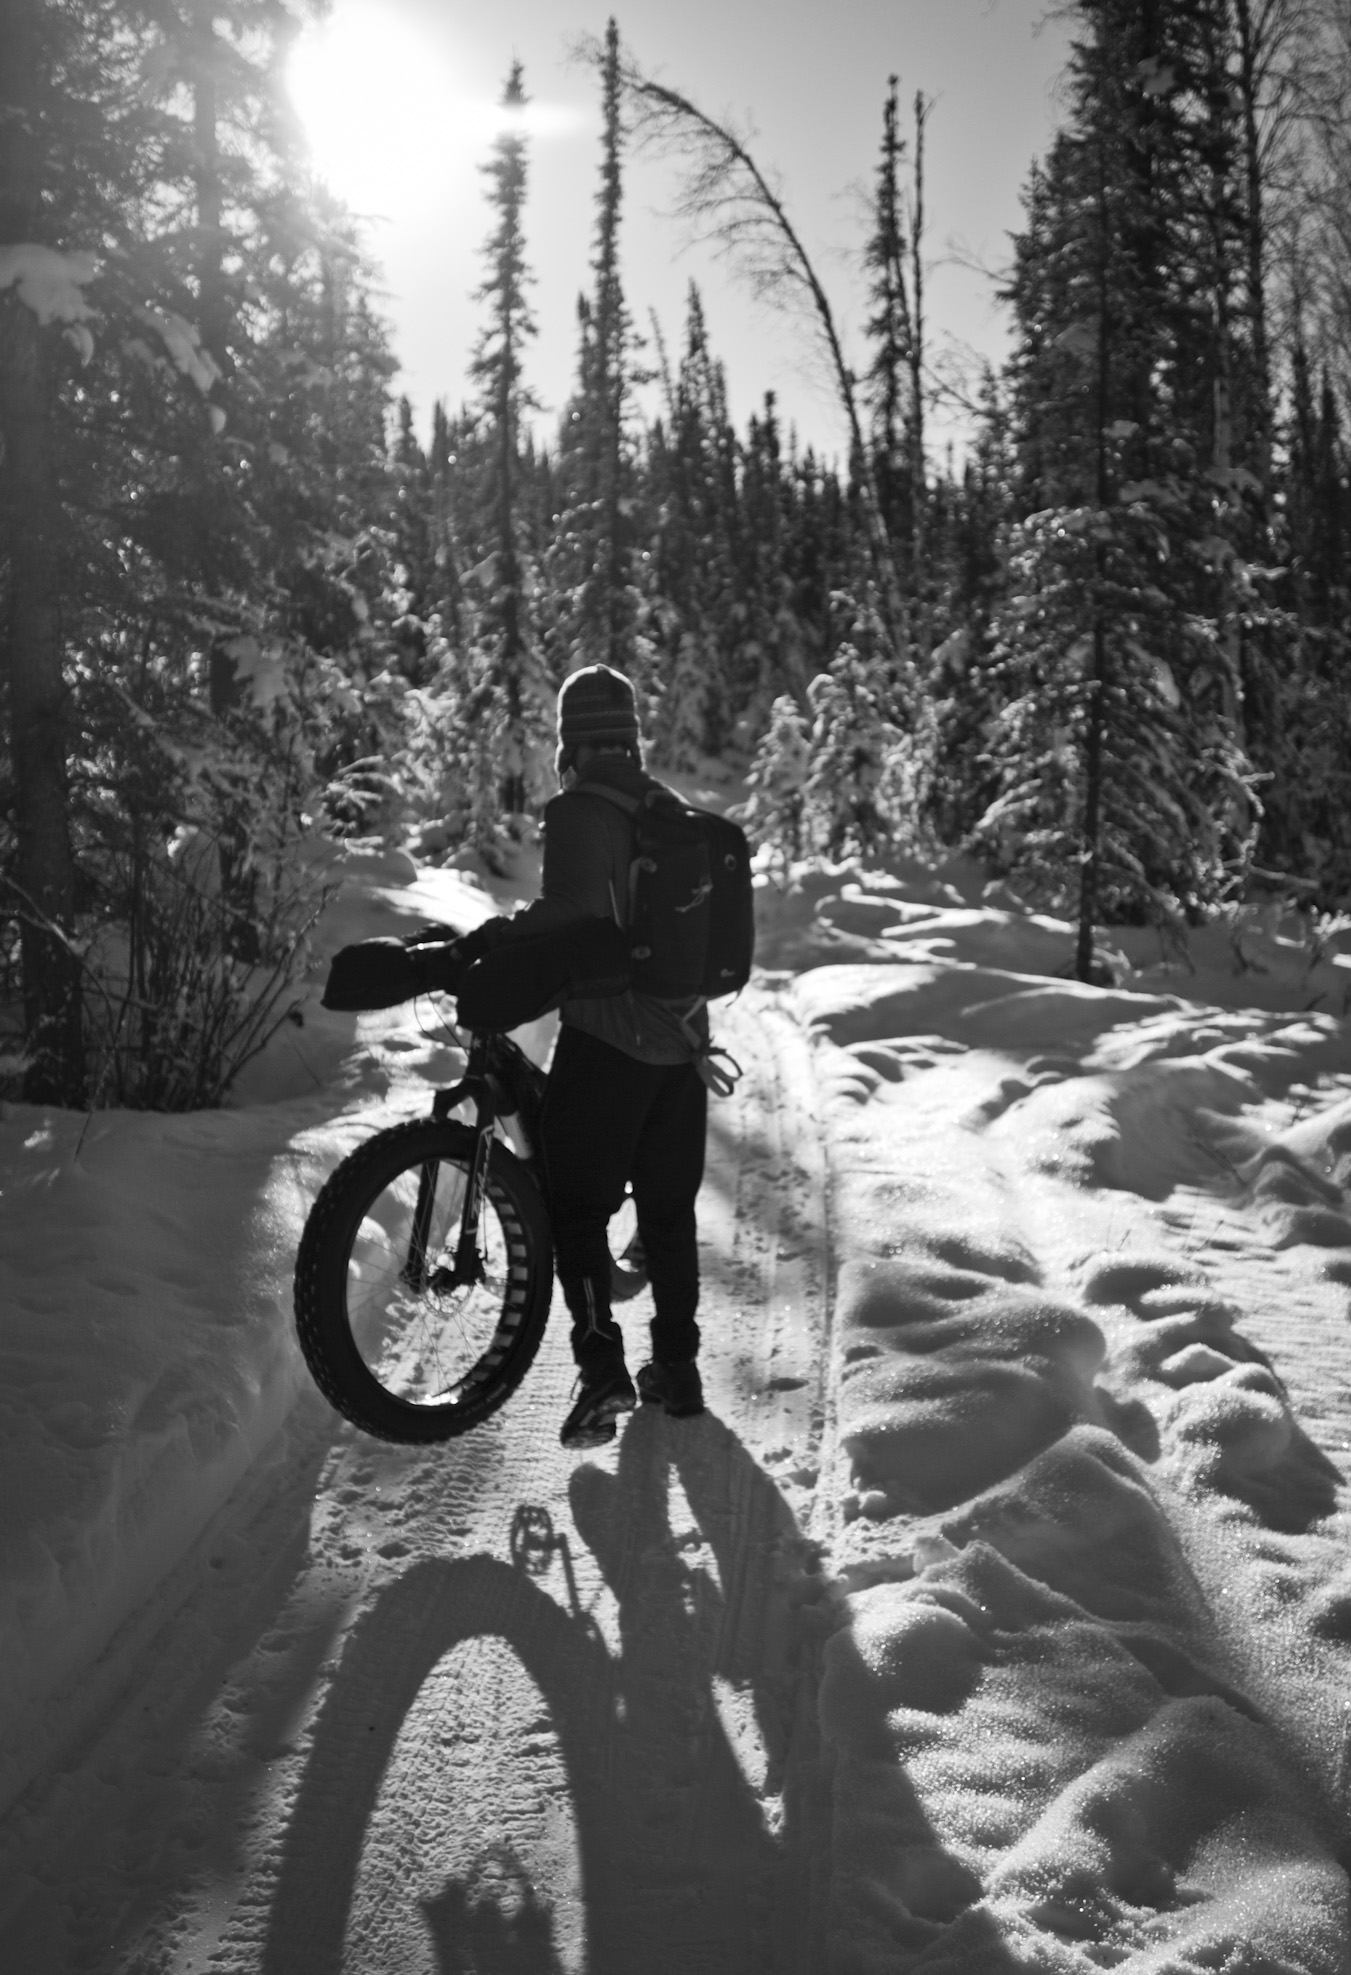 Colby Wright sets up his next bike photo in the warming rays of the late-winter sun. (c) Josh Spice 2014